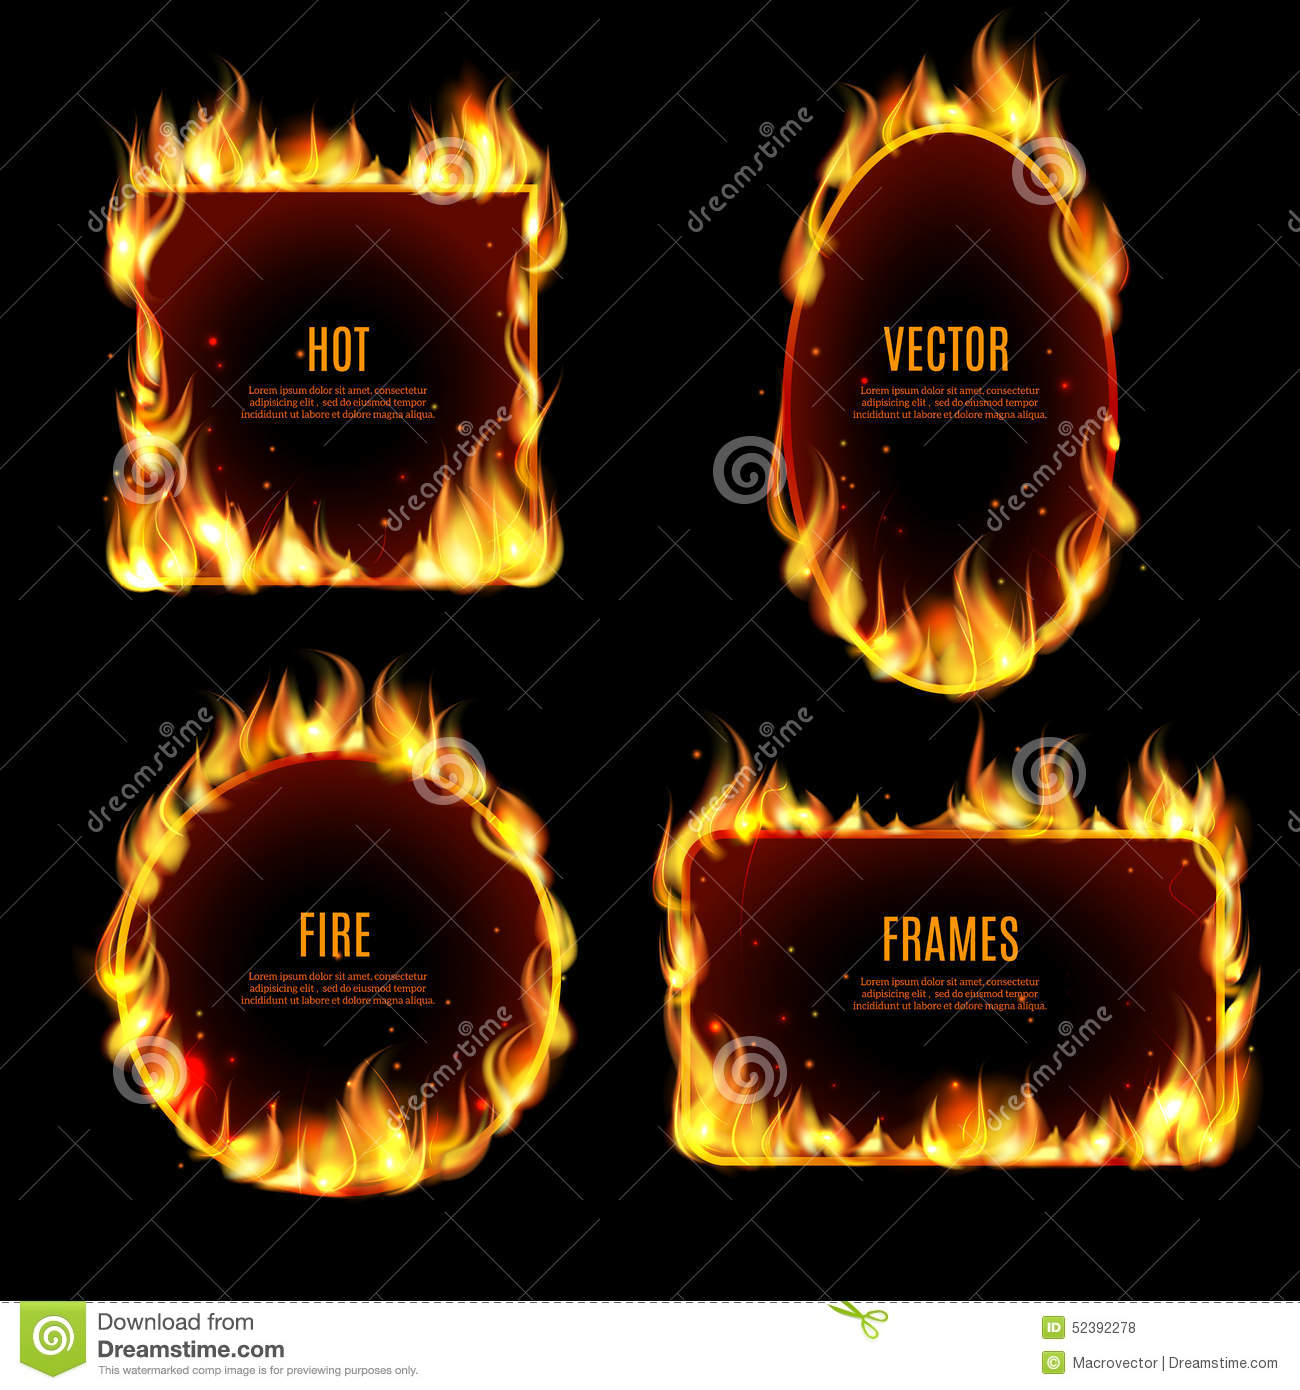 hot fire 11v11 divisions are full august 04, 2018 hi everyone, unfortunately, we only  have two 11v11 fields to use for the tournament this year right now, we are.